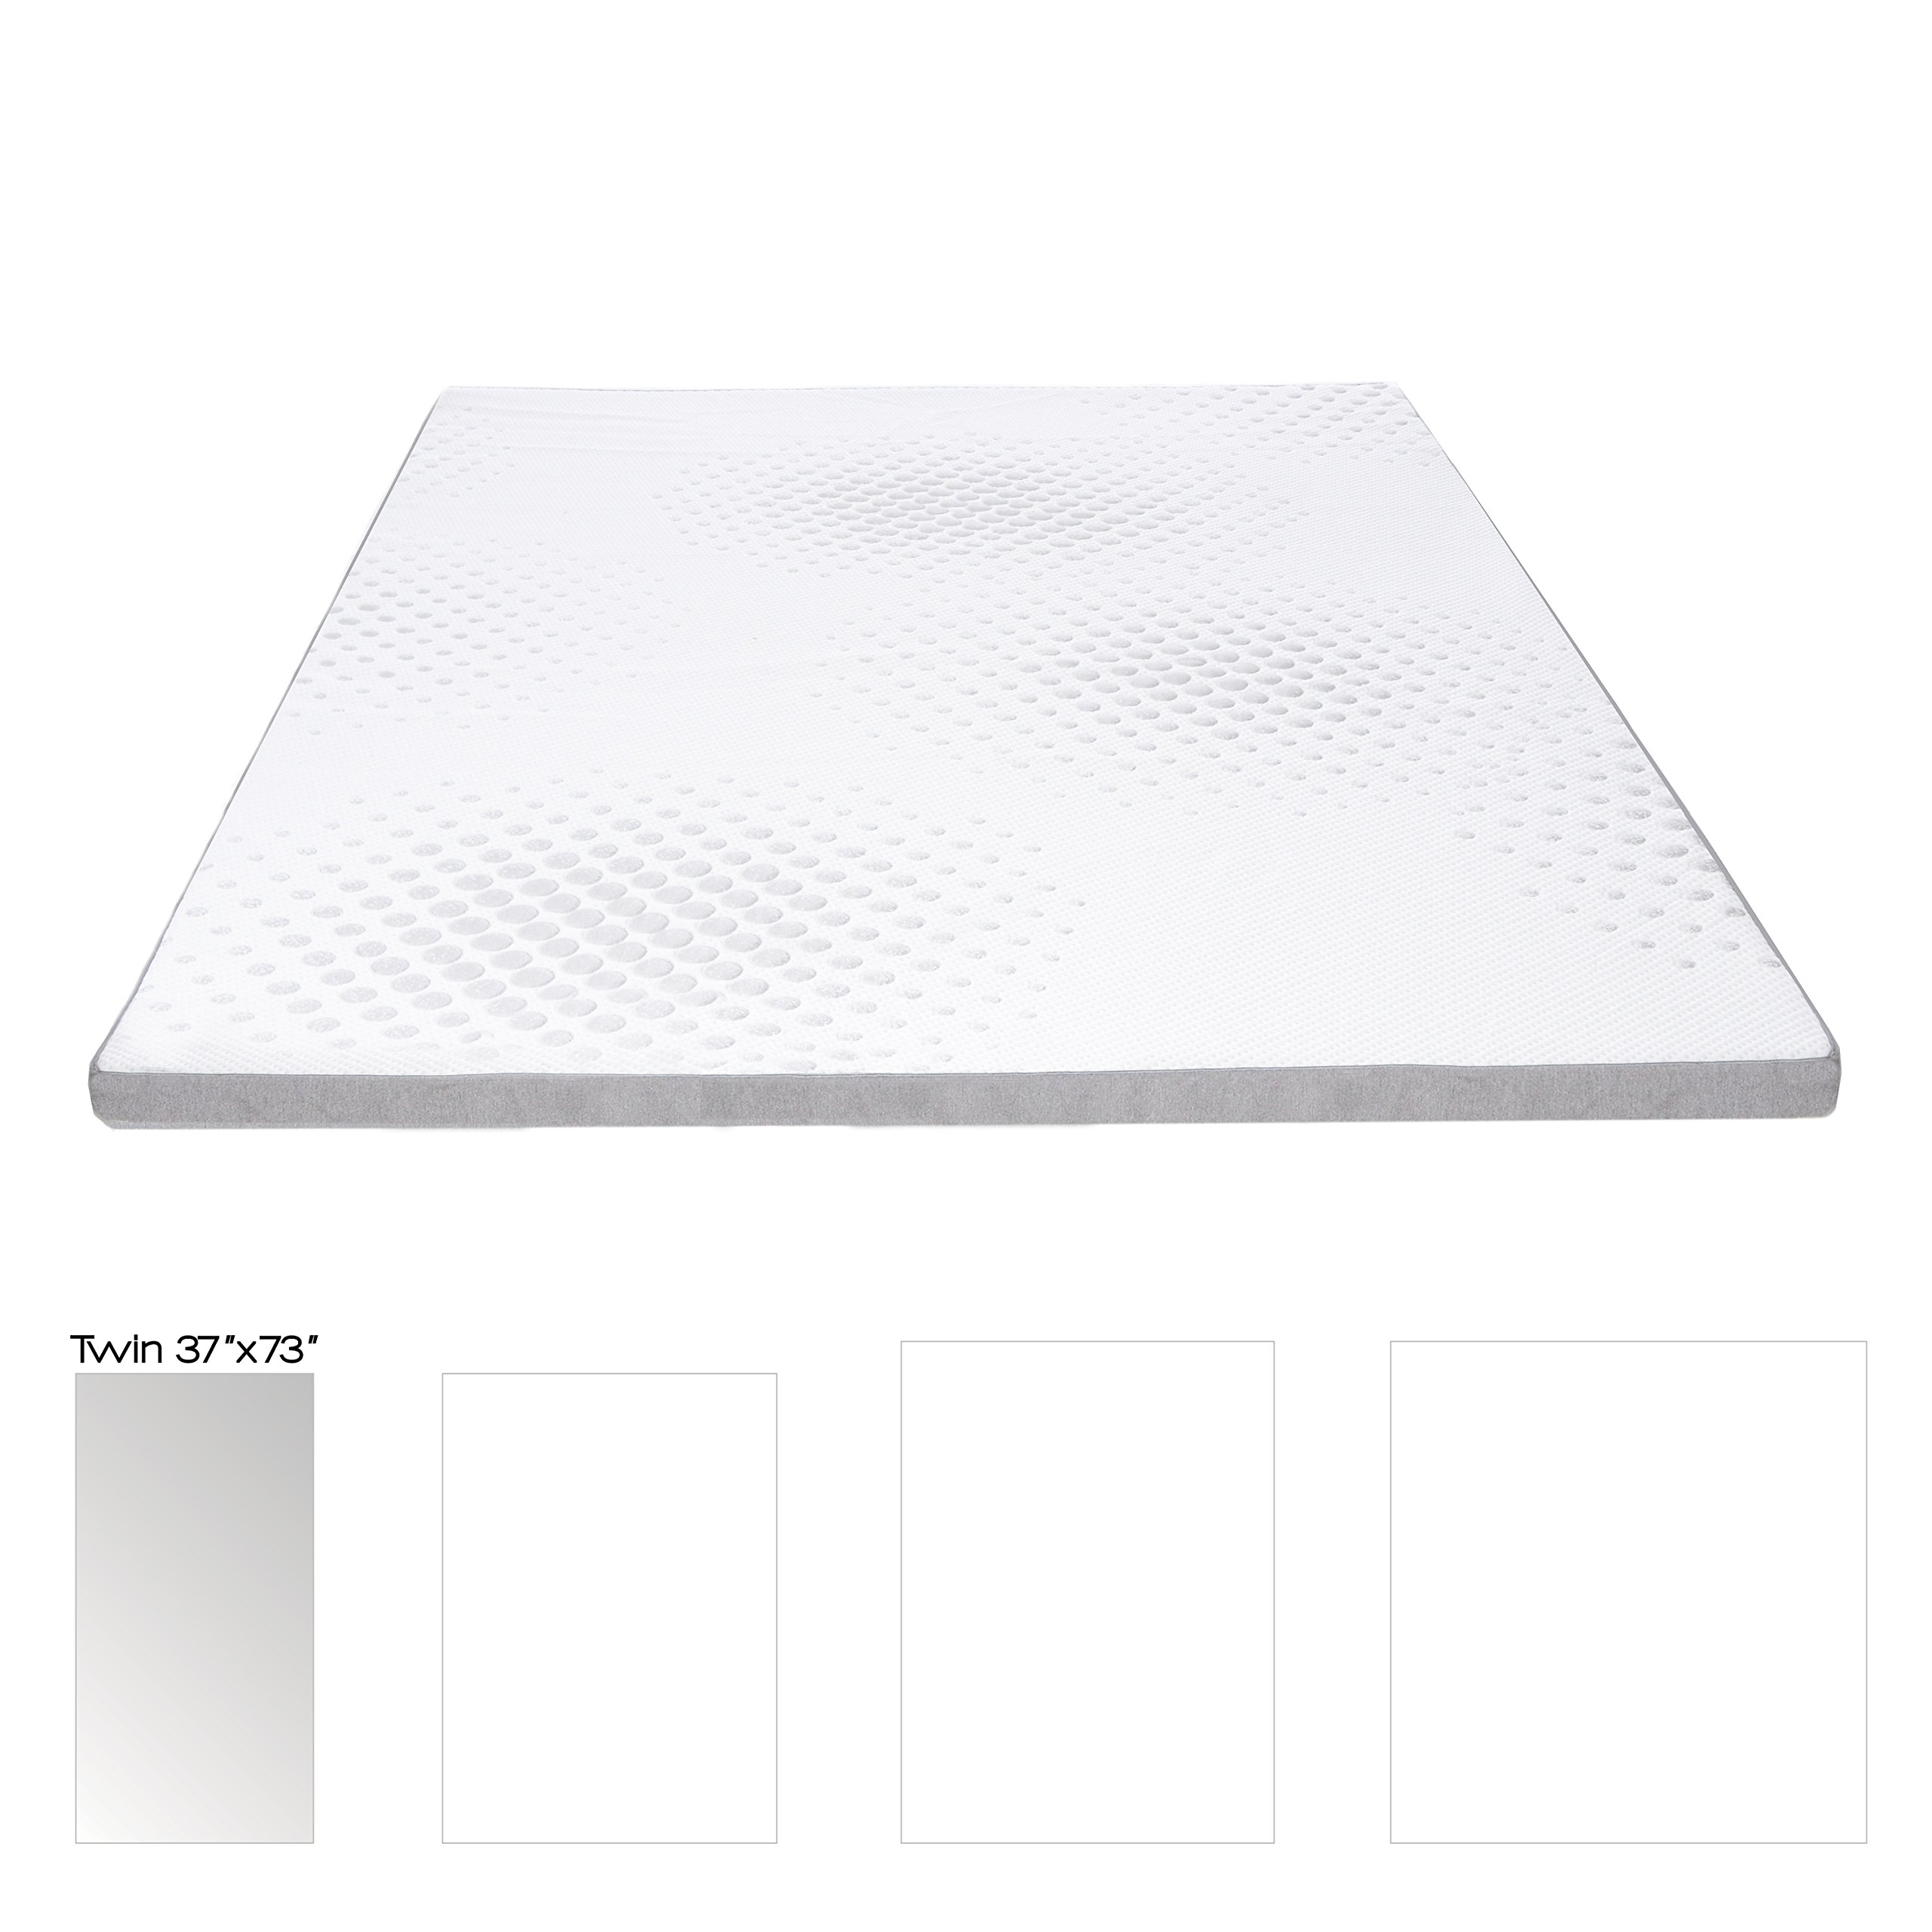 Milliard 2-inch Gel Memory Foam Mattress Topper - Featuring a Removable Washable Soft Bamboo Cover - Twin - 73''x37''x2